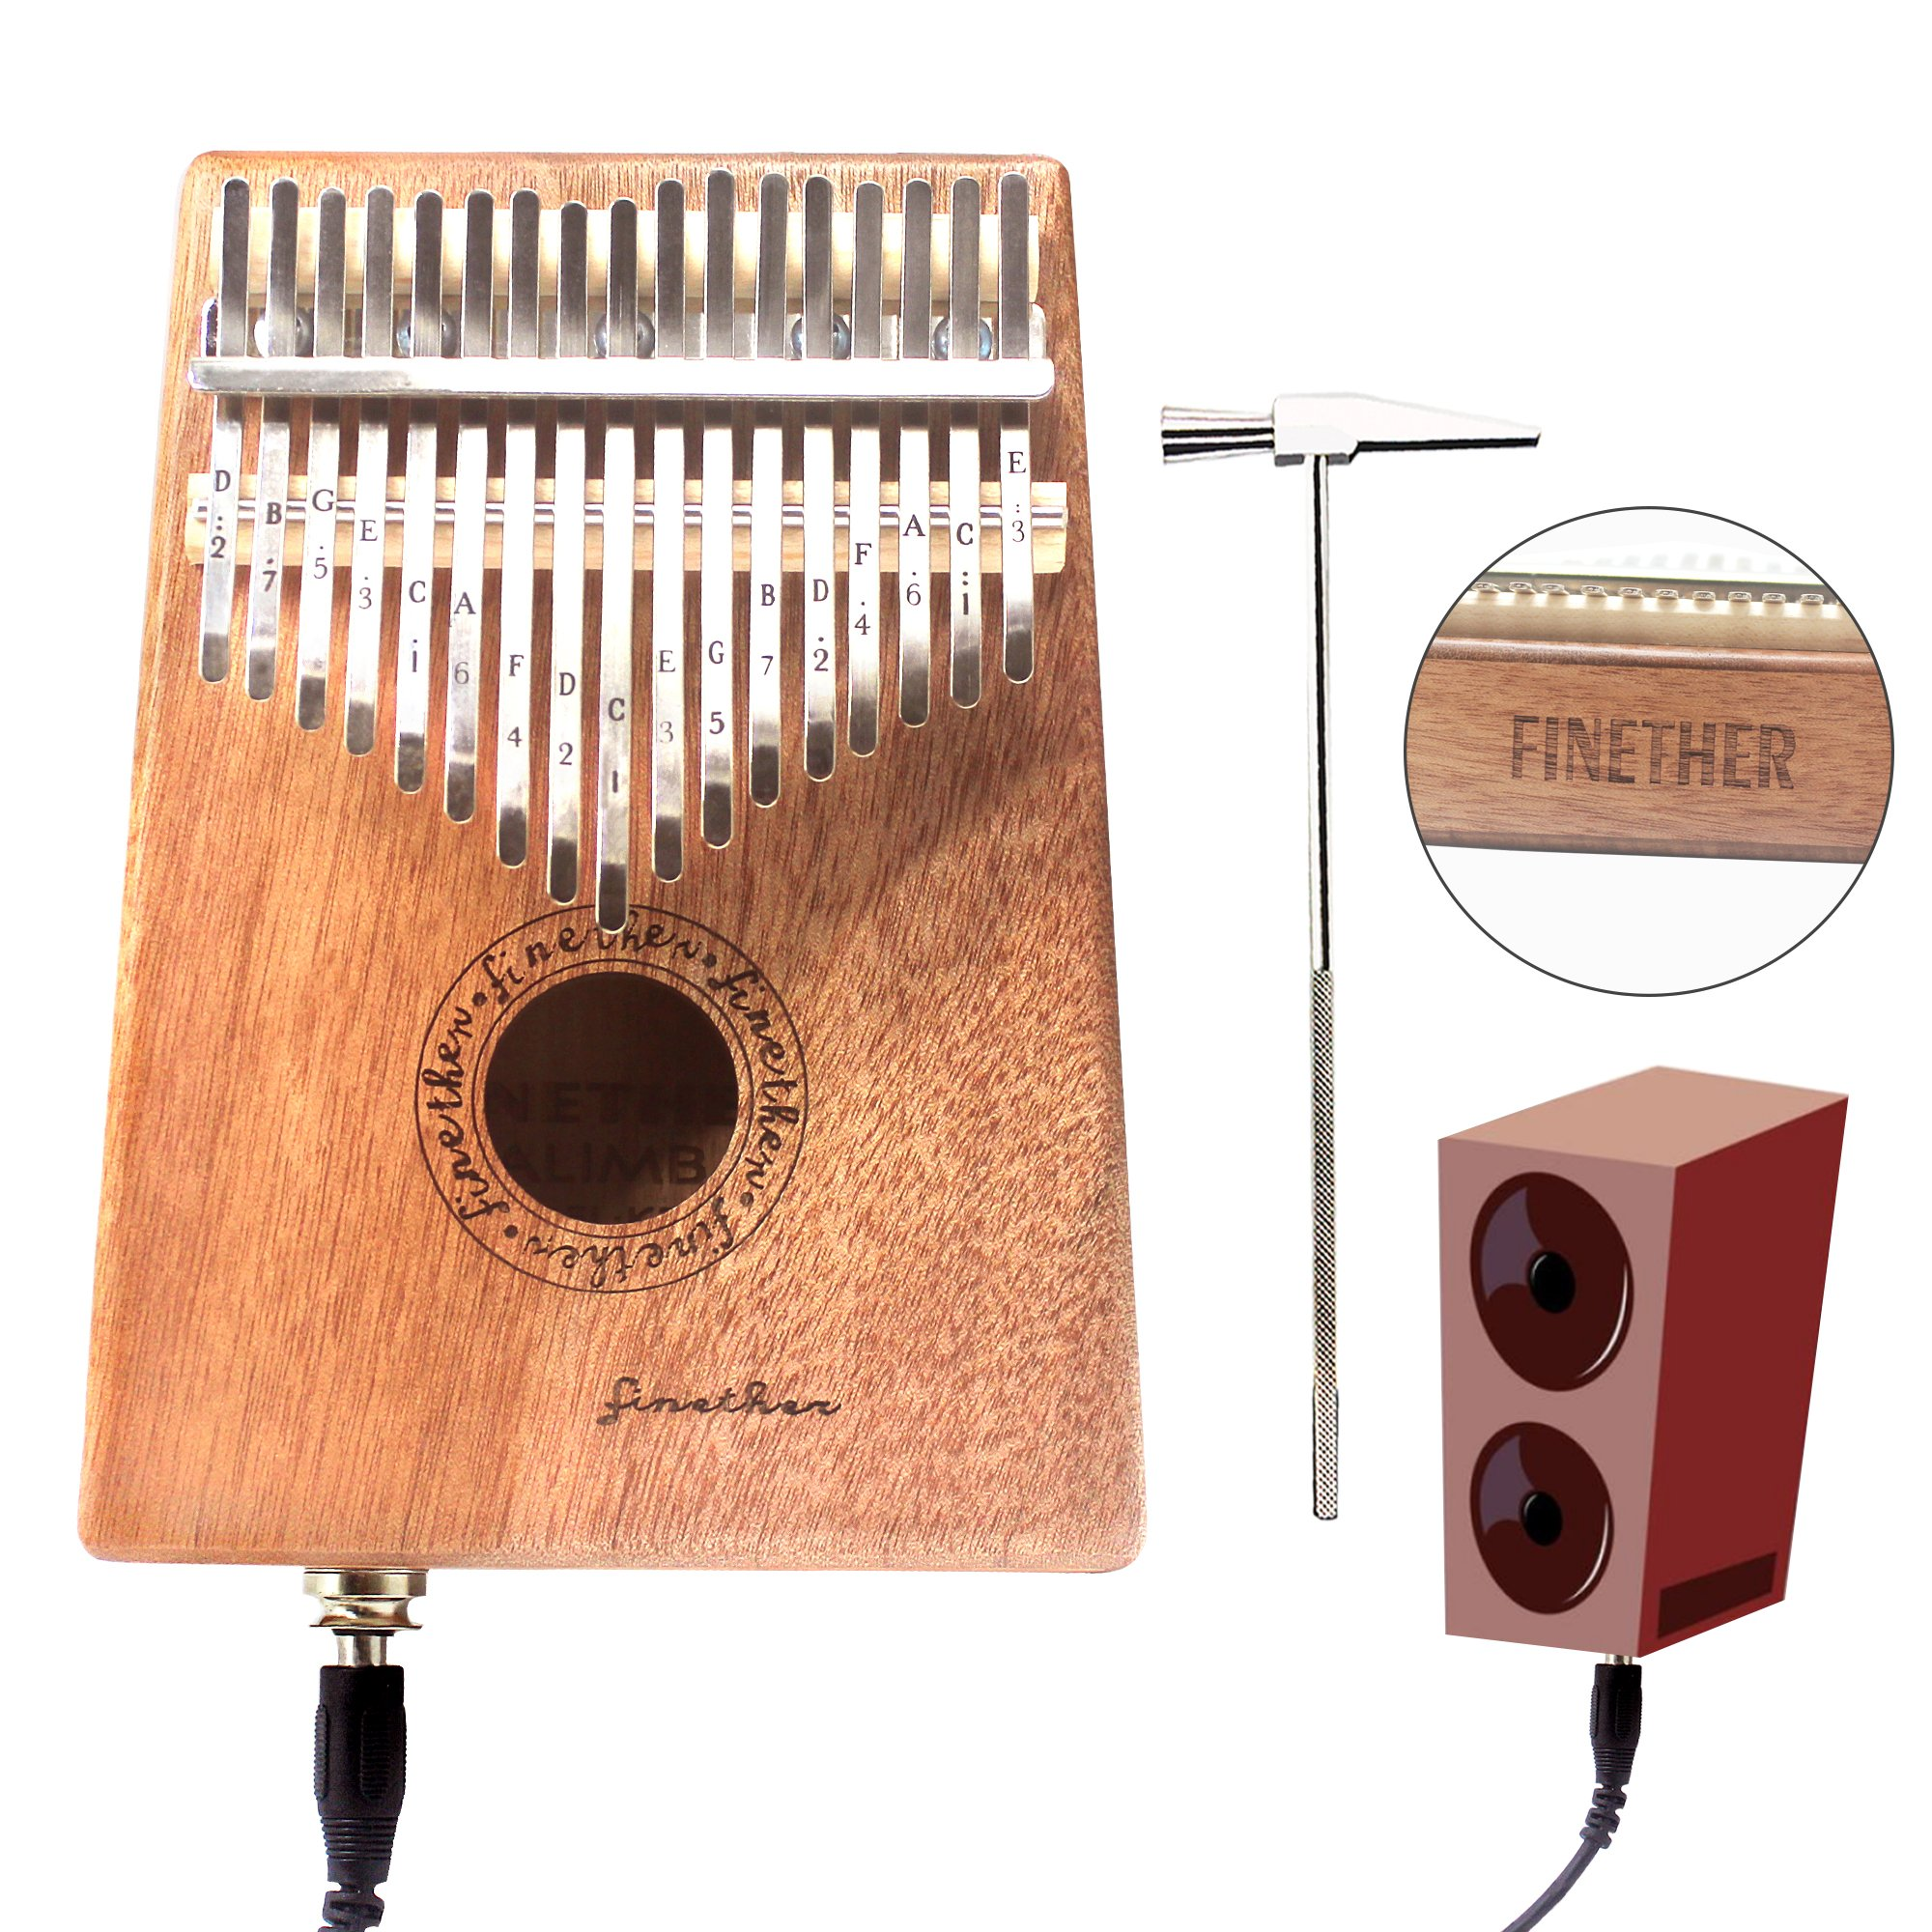 17 Keys Mahogany Kalimba Thumb Piano Wood Mbira Sanza Finger Percussion Pocket Keyboard w/Calibrating Tune Hammer for Beginners and Children (Mahogany with pick up jack)